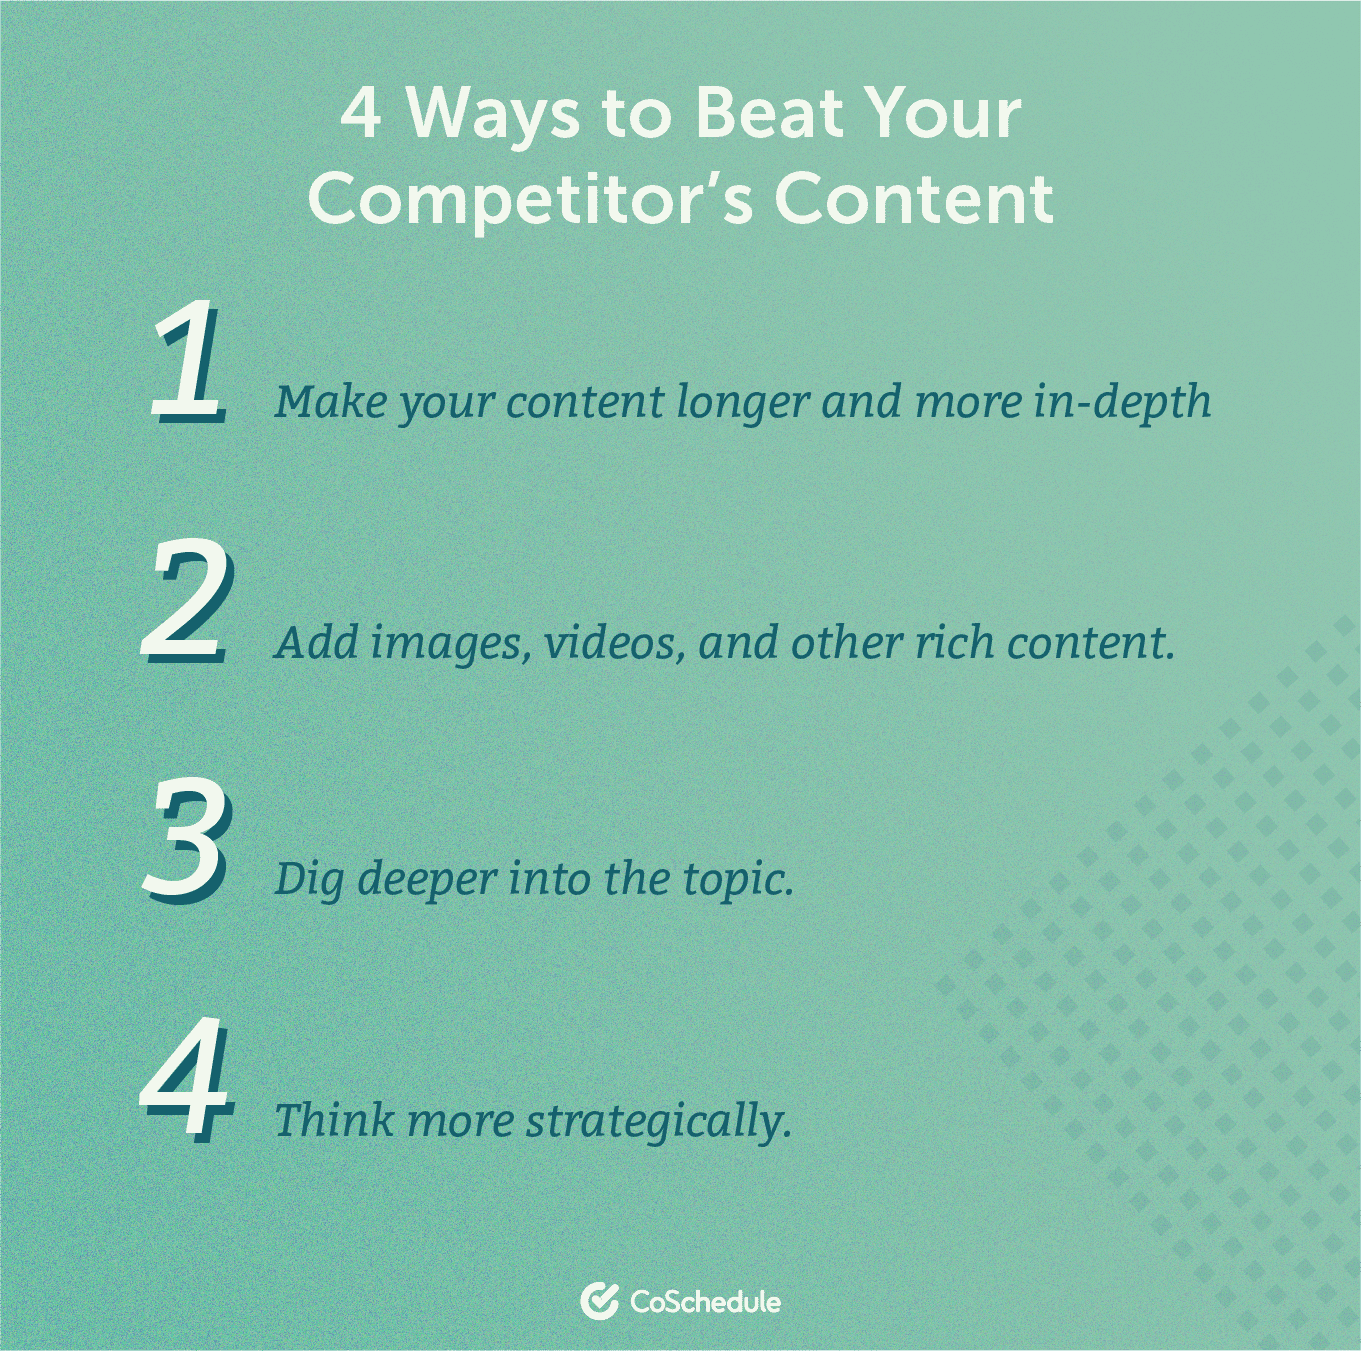 List of 4 things you can do to beat your competitor's content